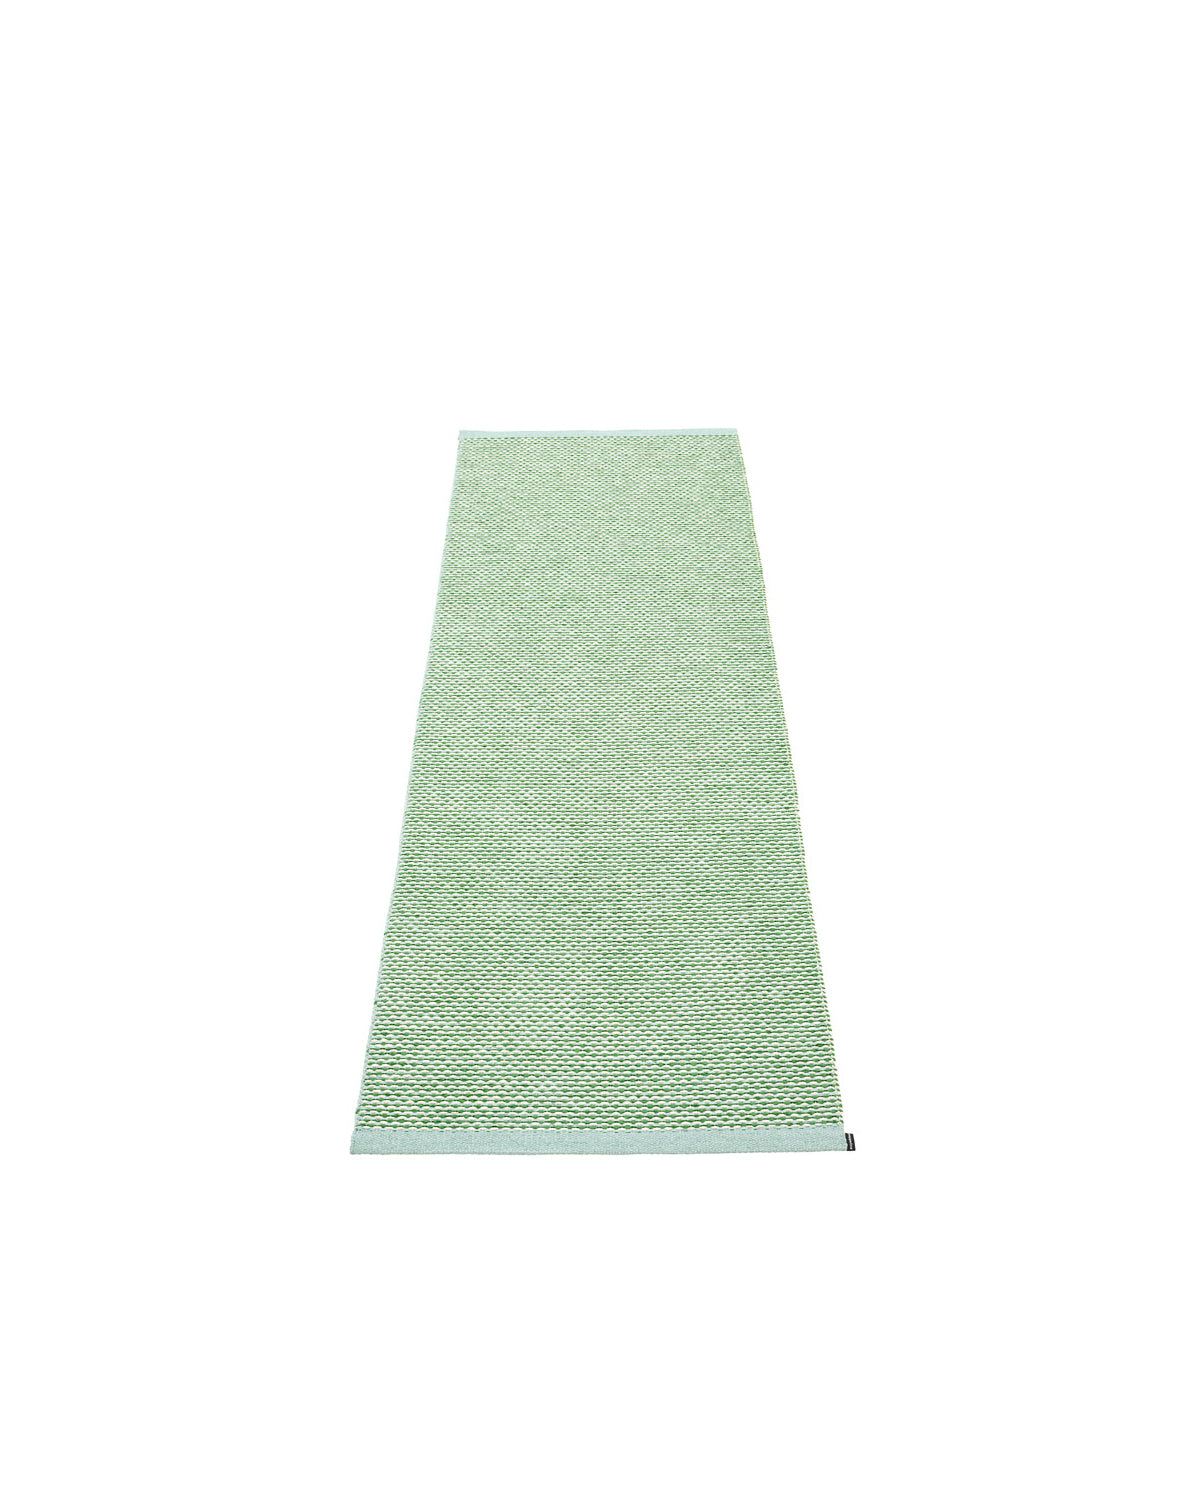 Rug EFFI Pale Turquoise